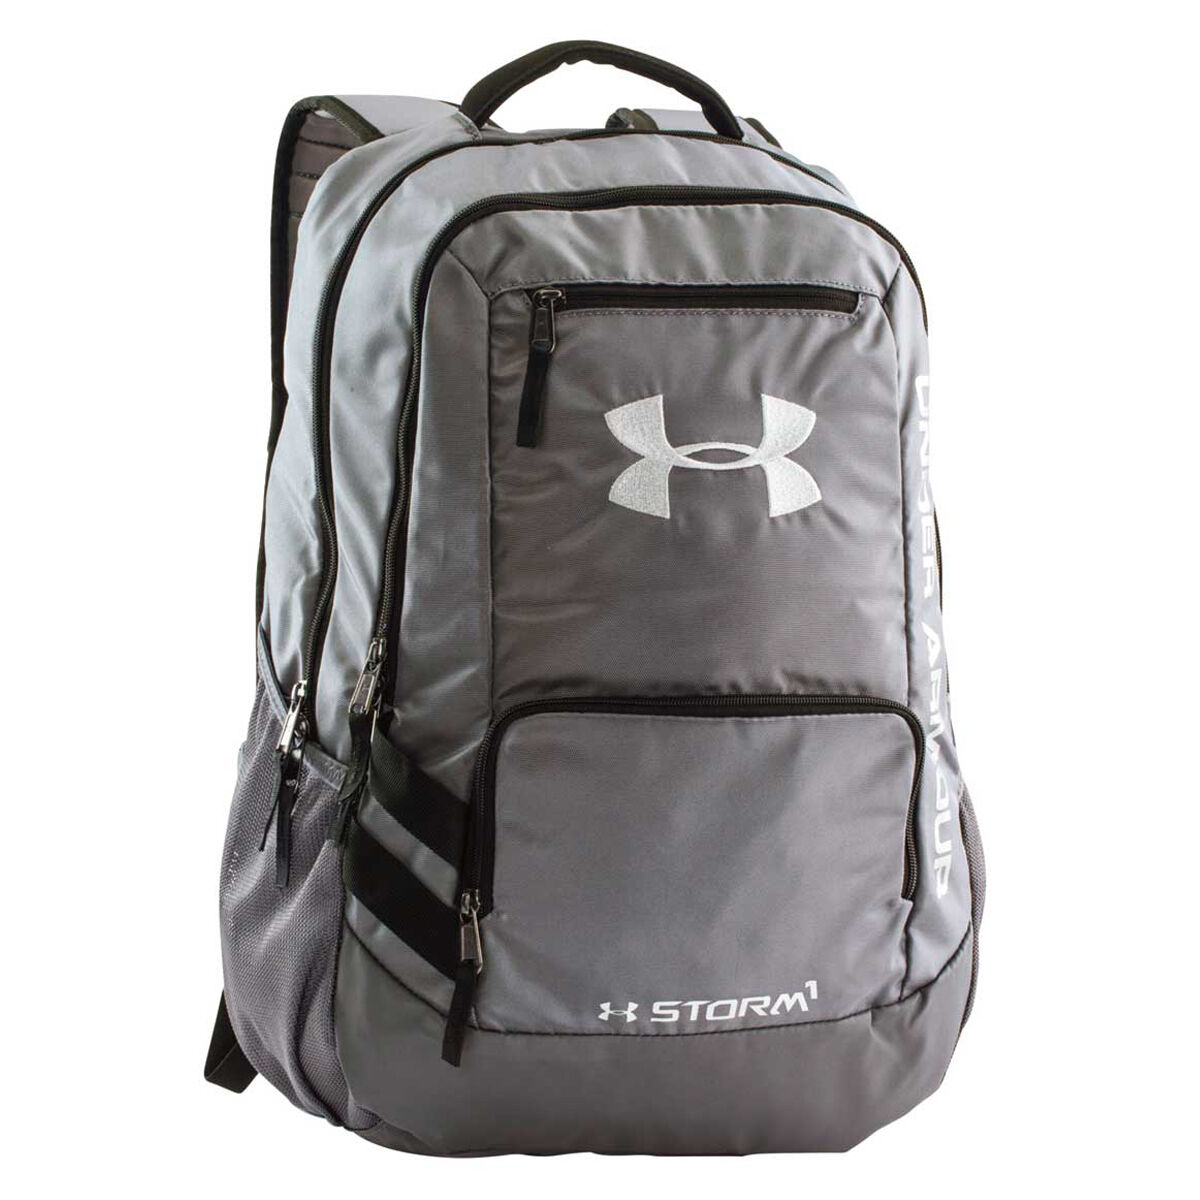 59cae0d32c The results of the research under armour storm hustle backpack